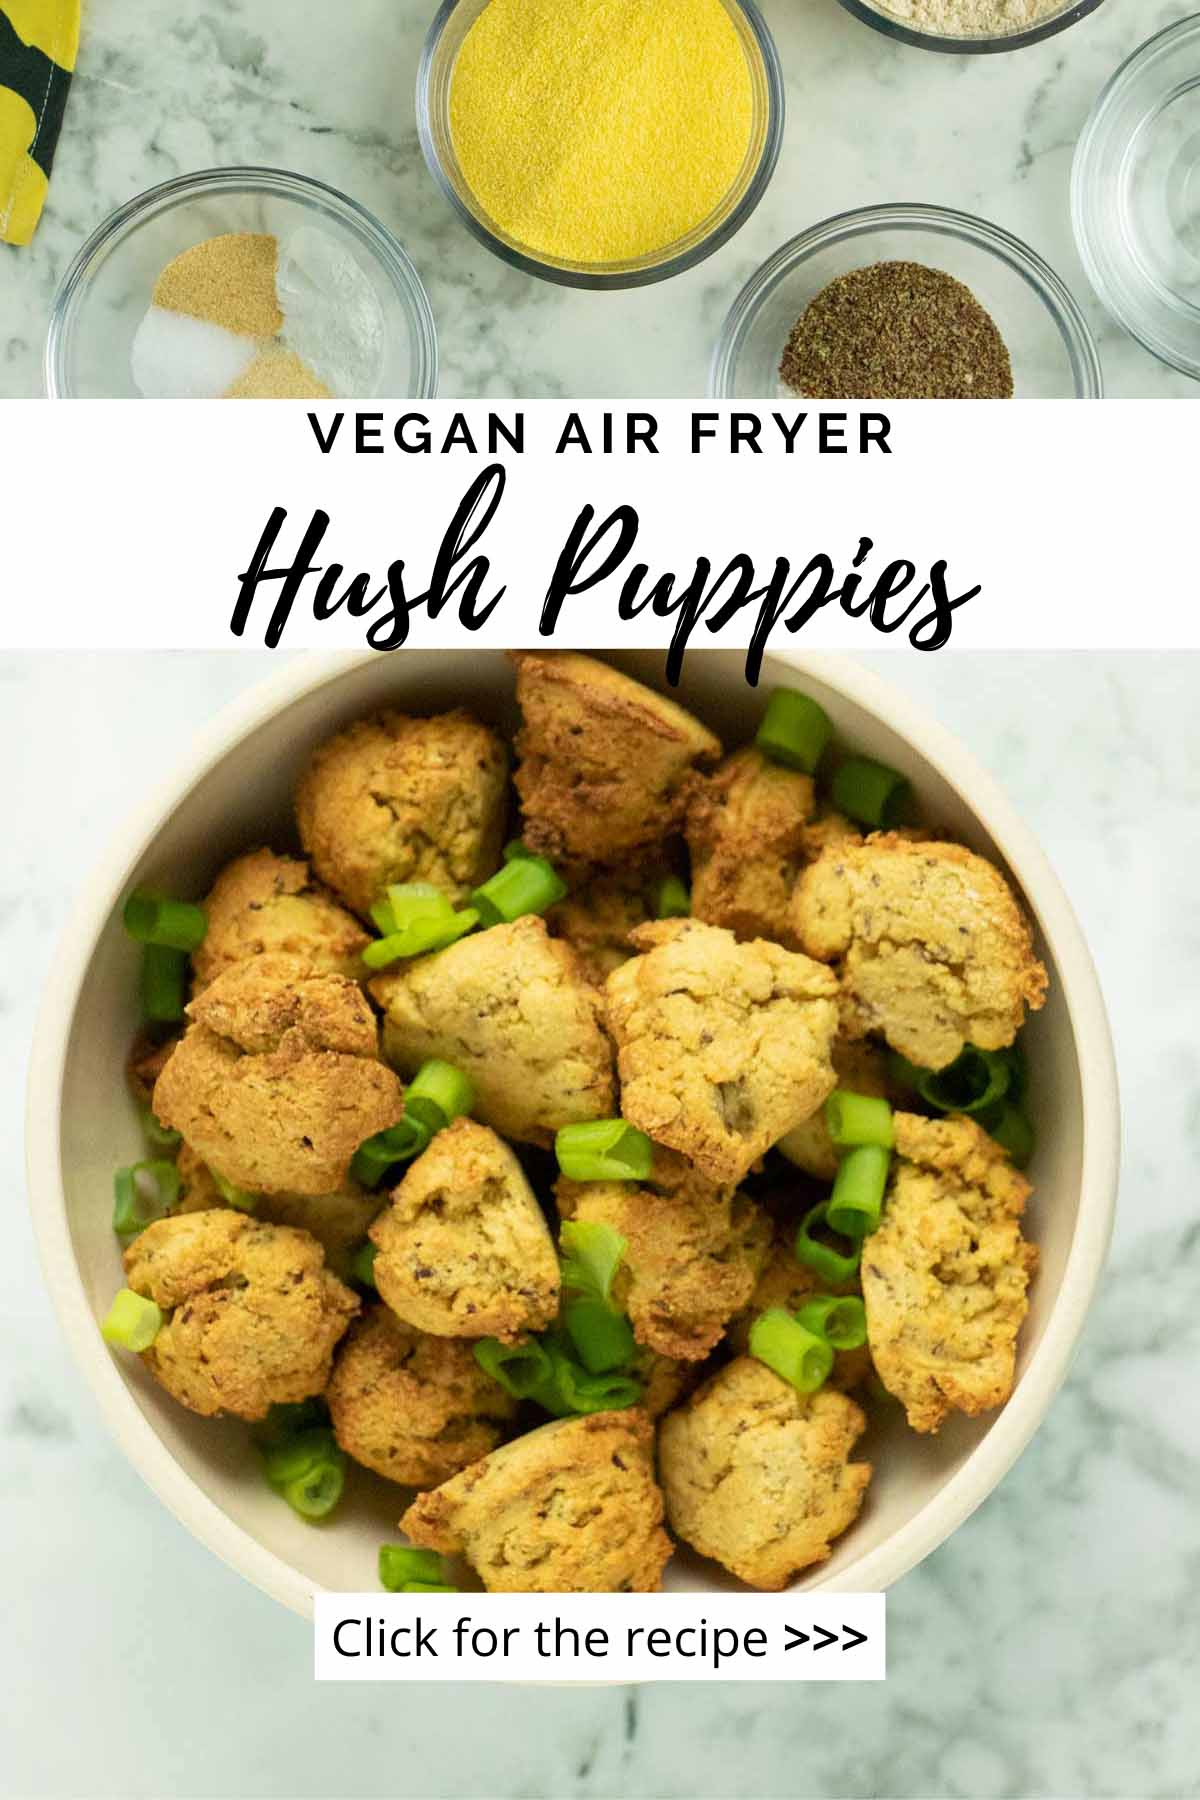 image collage of ingredients and the air fryer hush puppies in a bowl on a marble table